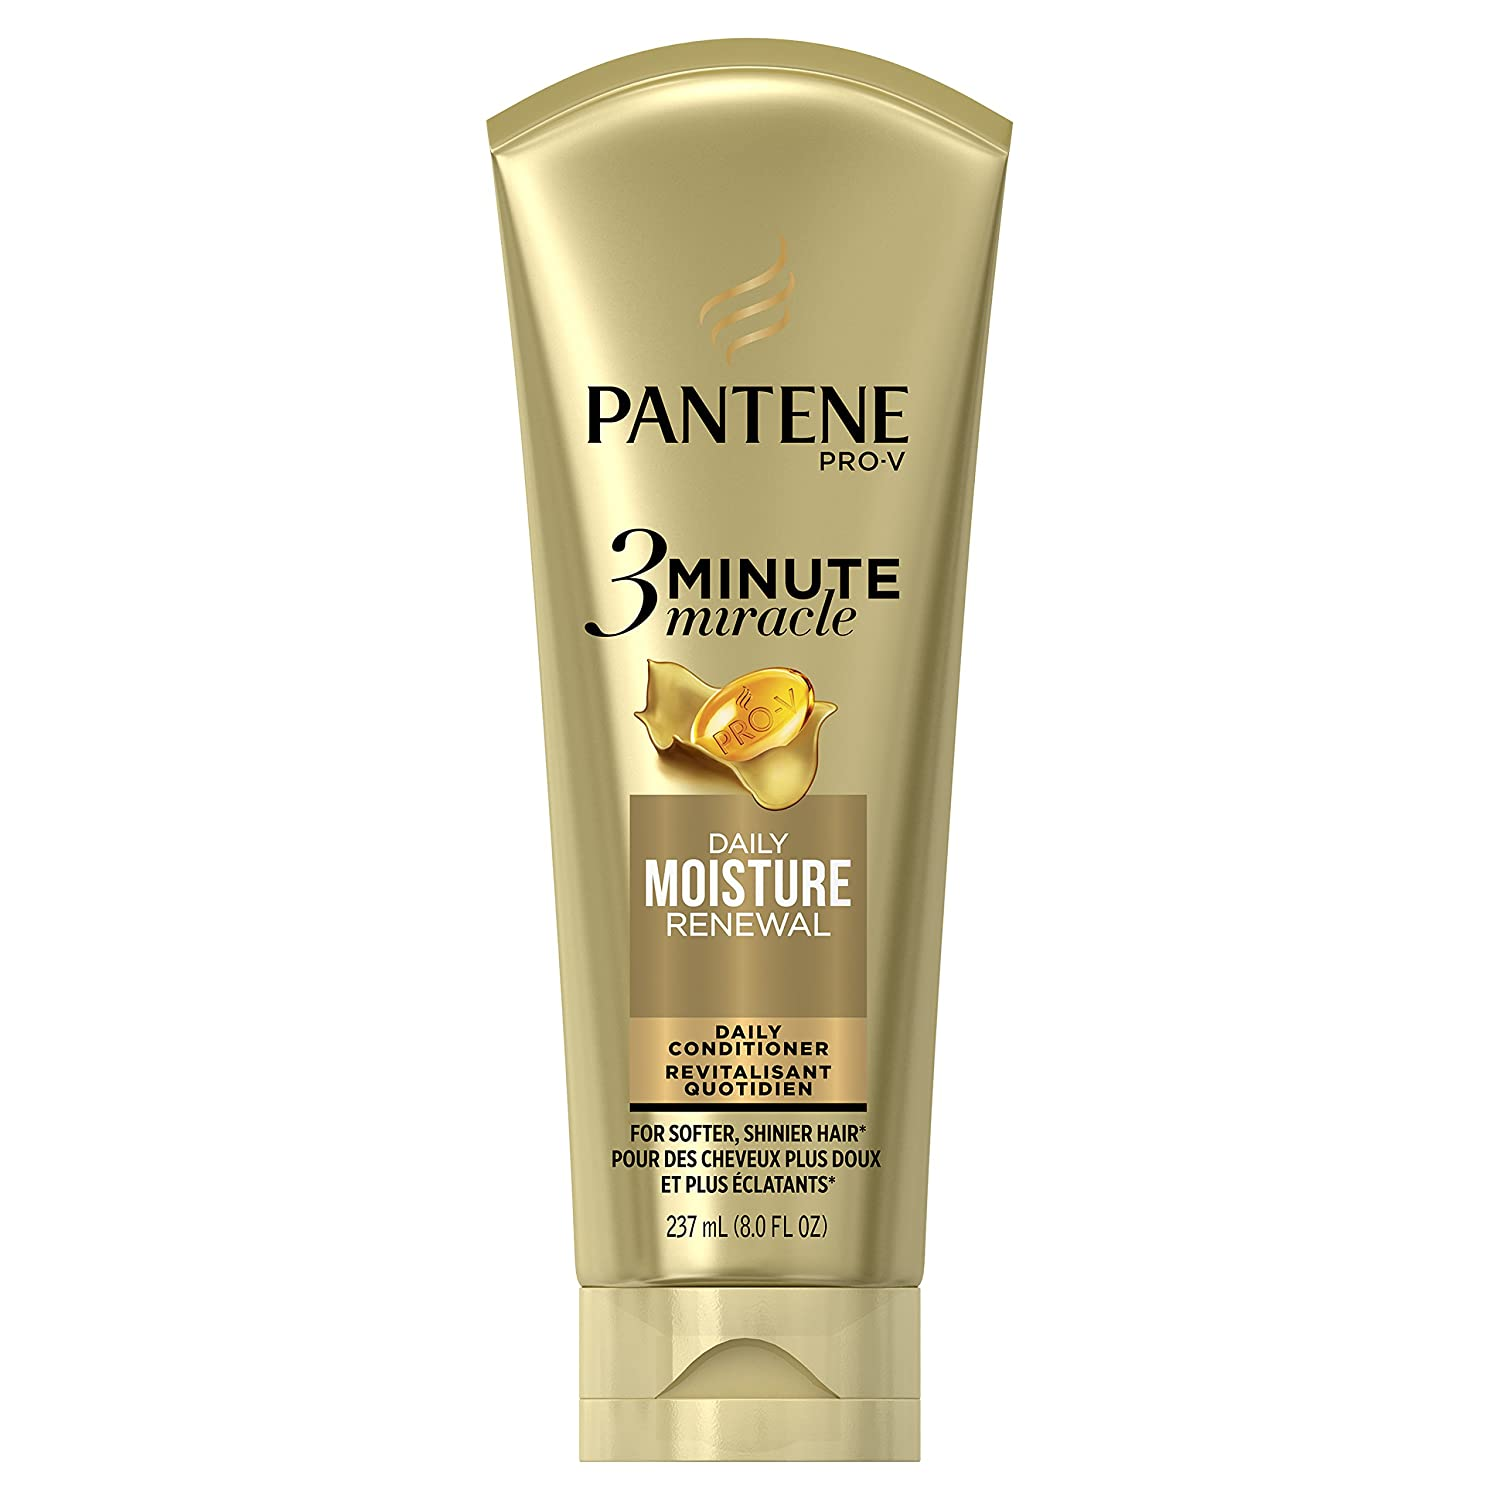 Pantene Daily Moisture Renewal 3 Minute Miracle Daily Conditioner, 8.0 fl oz (Packaging May Vary)